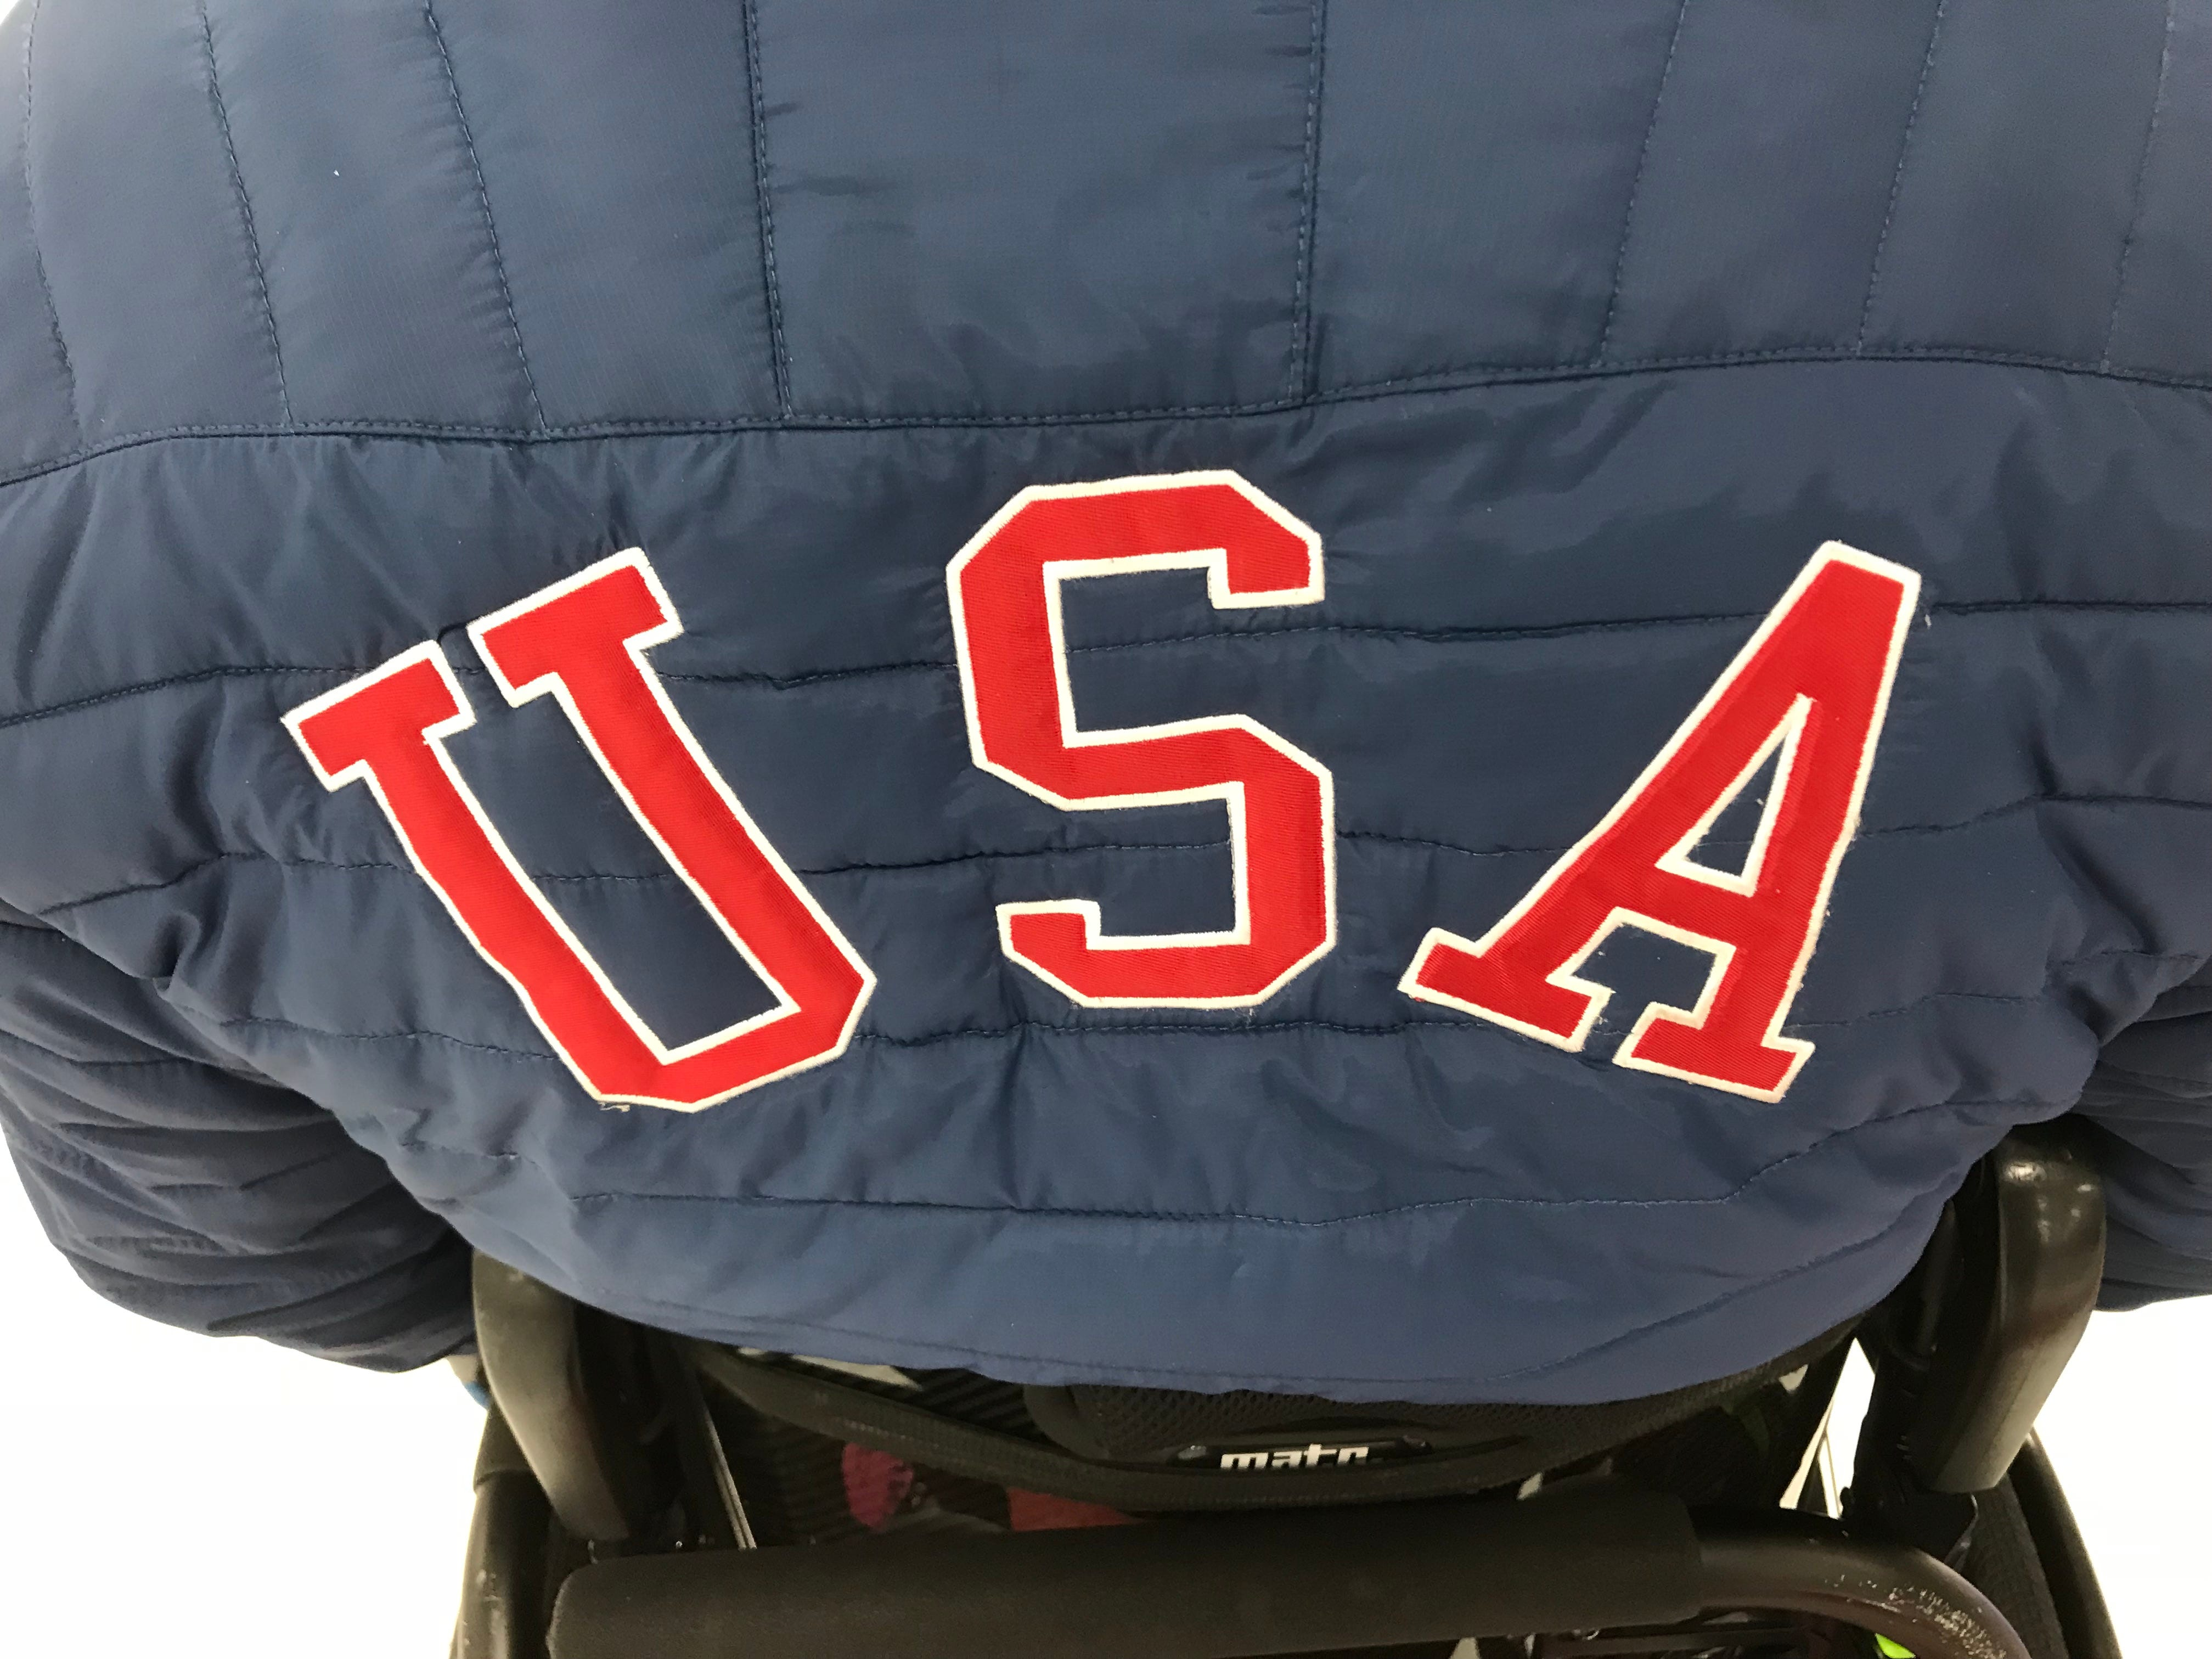 Matt Thums joins four other athletes on Team USA: Steve Emt, Hebron, Conn.; Meghan Lino, East Falmouth, Mass.; Pam Wilson, Westminster, Colo.; and David Samsa, Suamico;